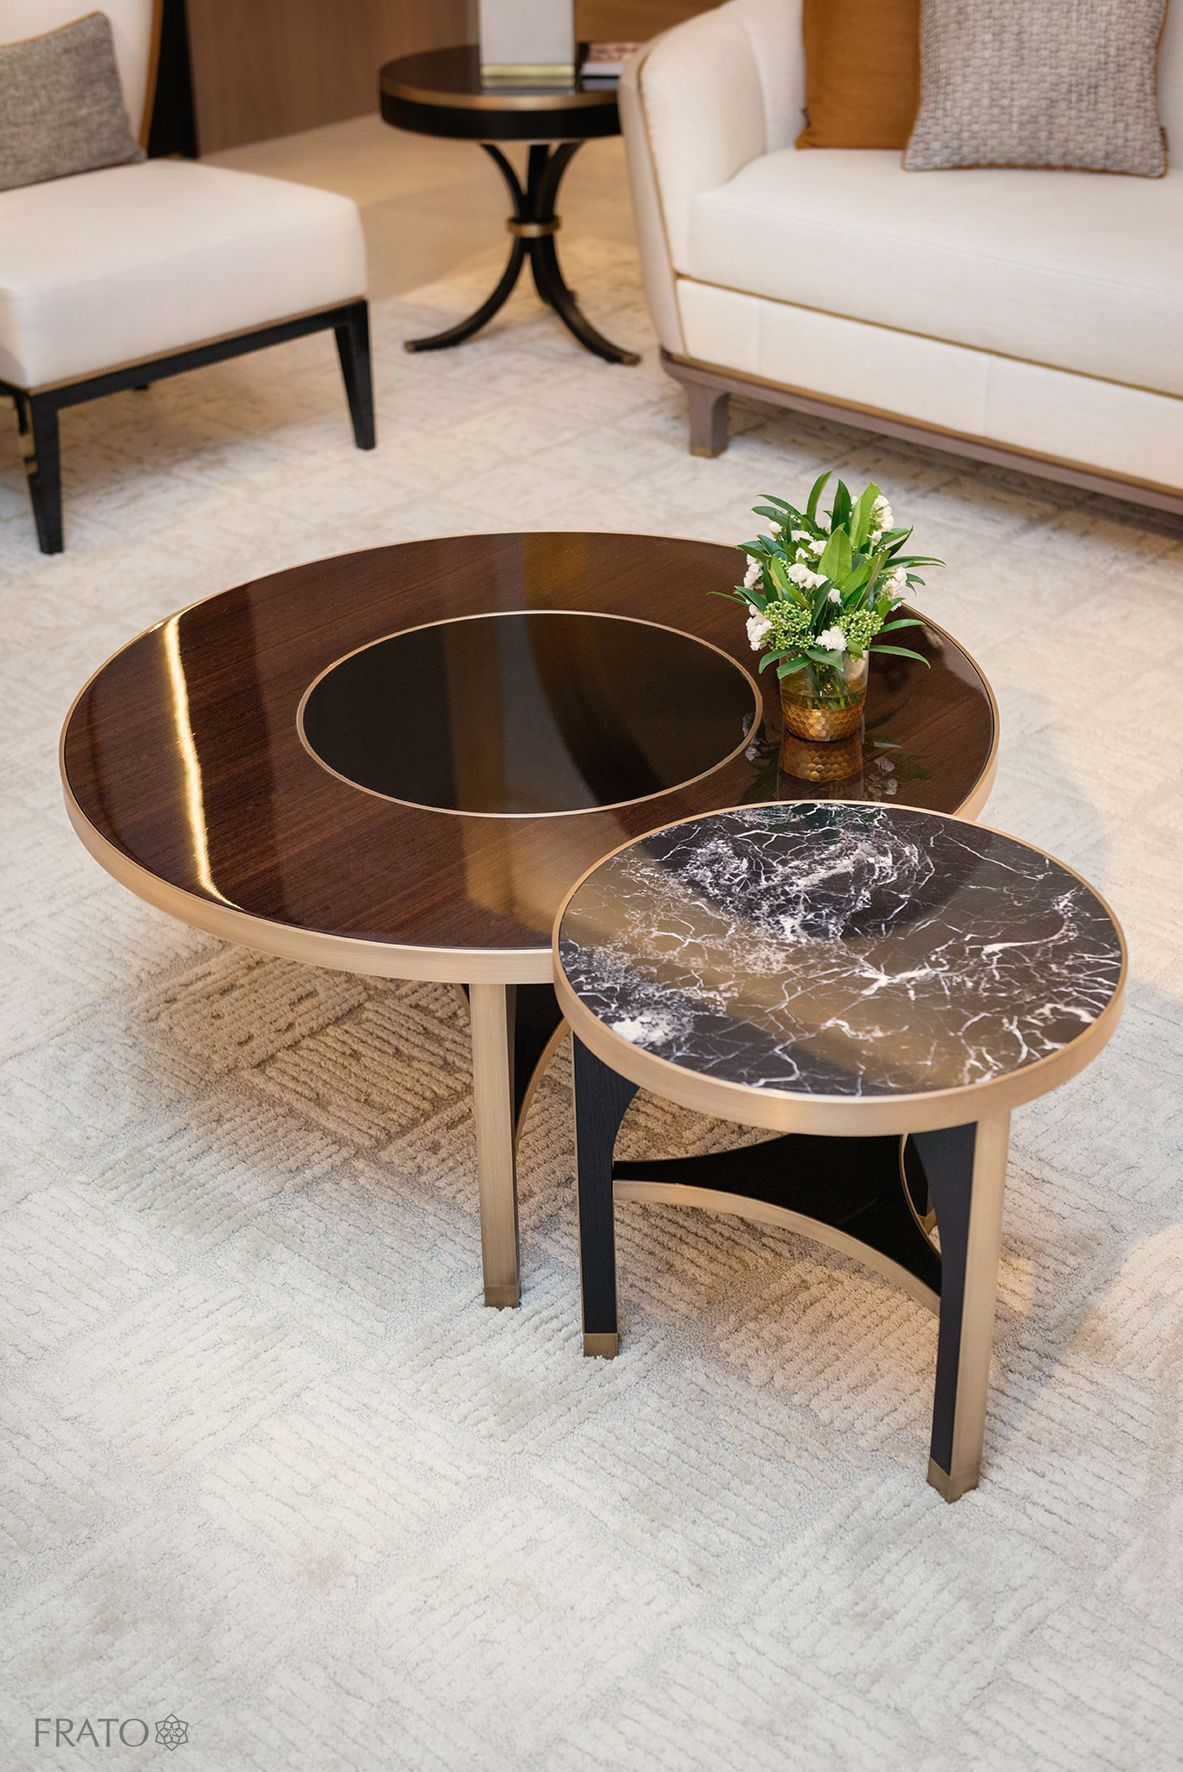 22 Modern Coffee Tables Designs Interesting Best Unique And Classy In 2020 With Images Centre Table Living Room Centre Table Design